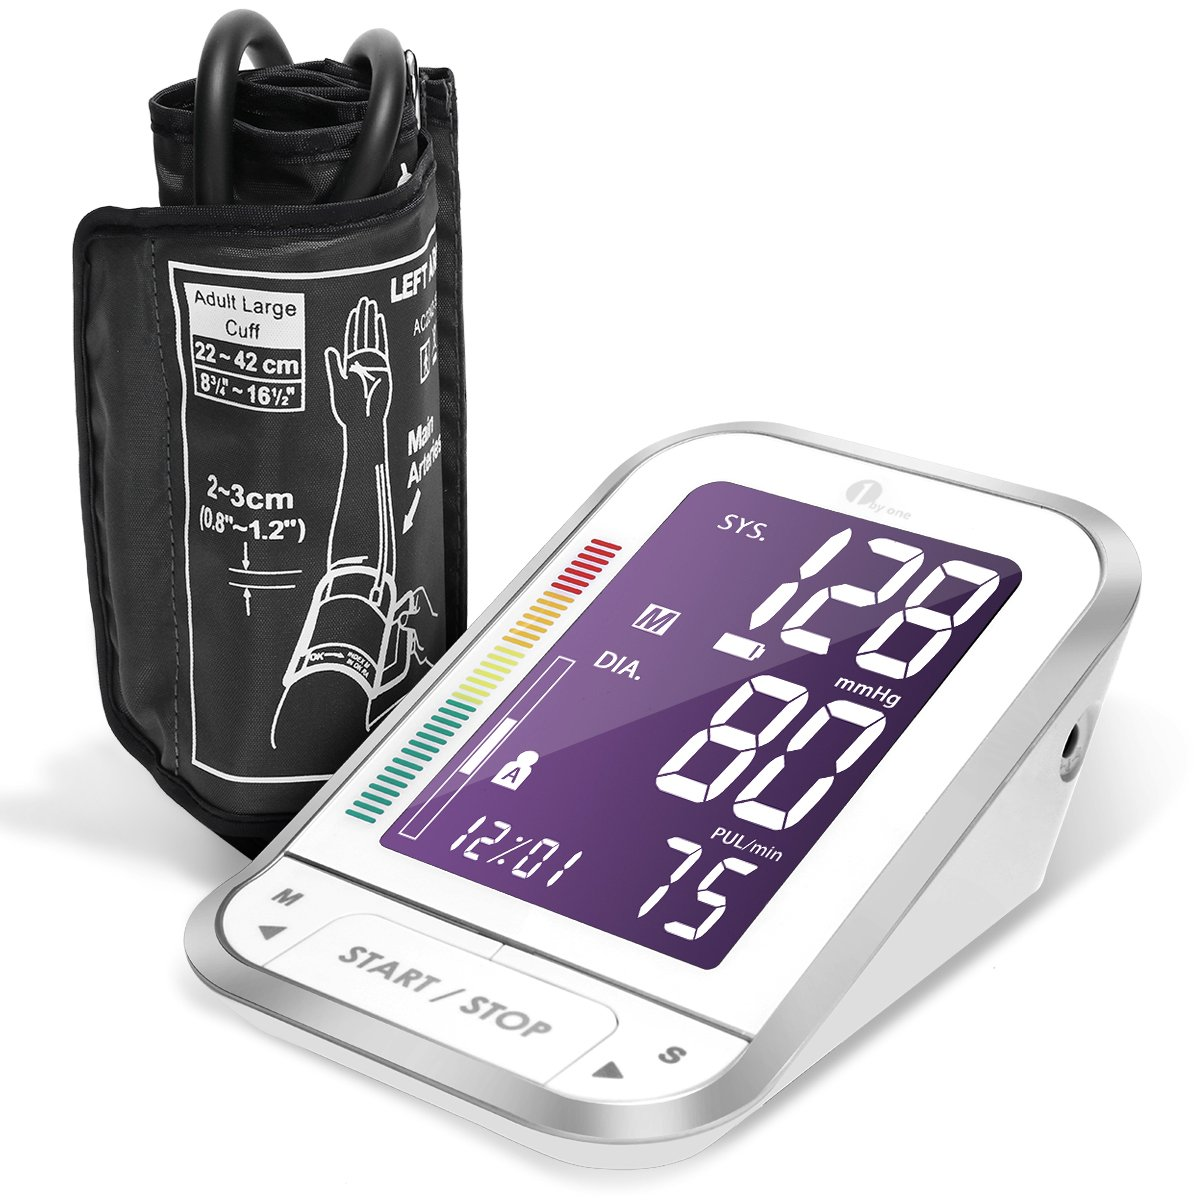 1byone Upper Arm Digital Blood Pressure Monitor Blood Pressure Cuff with Easy-to-Read Backlit LCD, Blood Pressure Machine One Size Fits All Cuff, Sphygmomanometer Nylon Storage Case, White